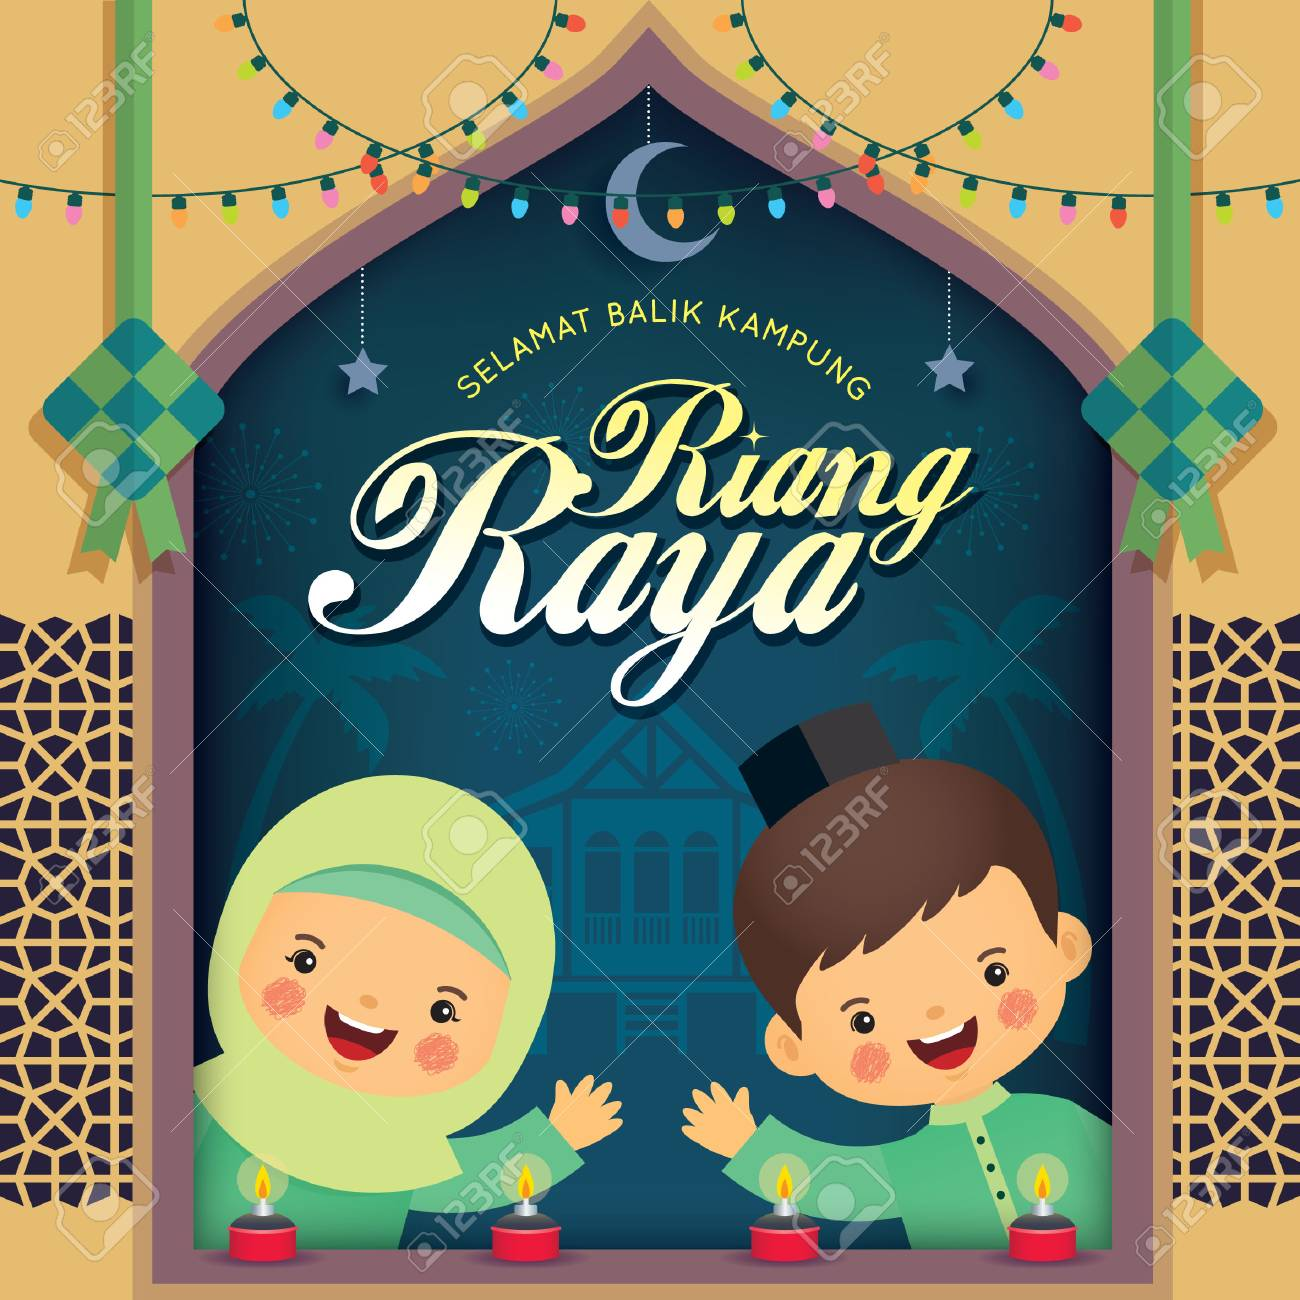 Hari Raya Aidilfitri Greeting Card Cute Cartoon Muslim With Royalty Free Cliparts Vectors And Stock Illustration Image 123010101